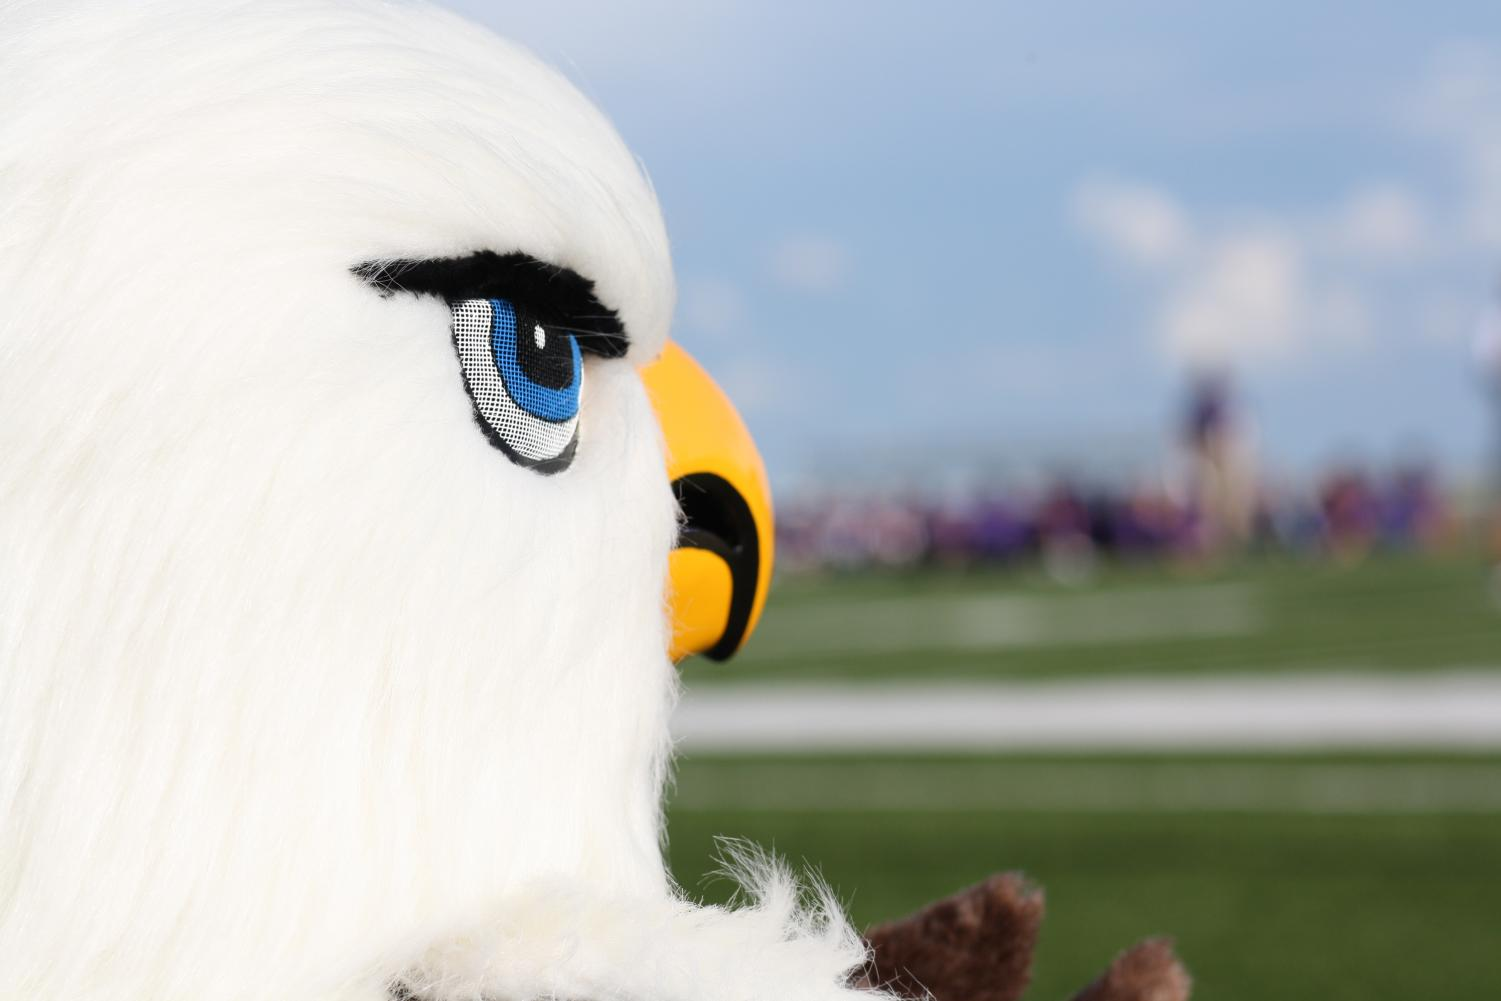 The mascot watches from the sidelines during last year's Meet the Eagles event.